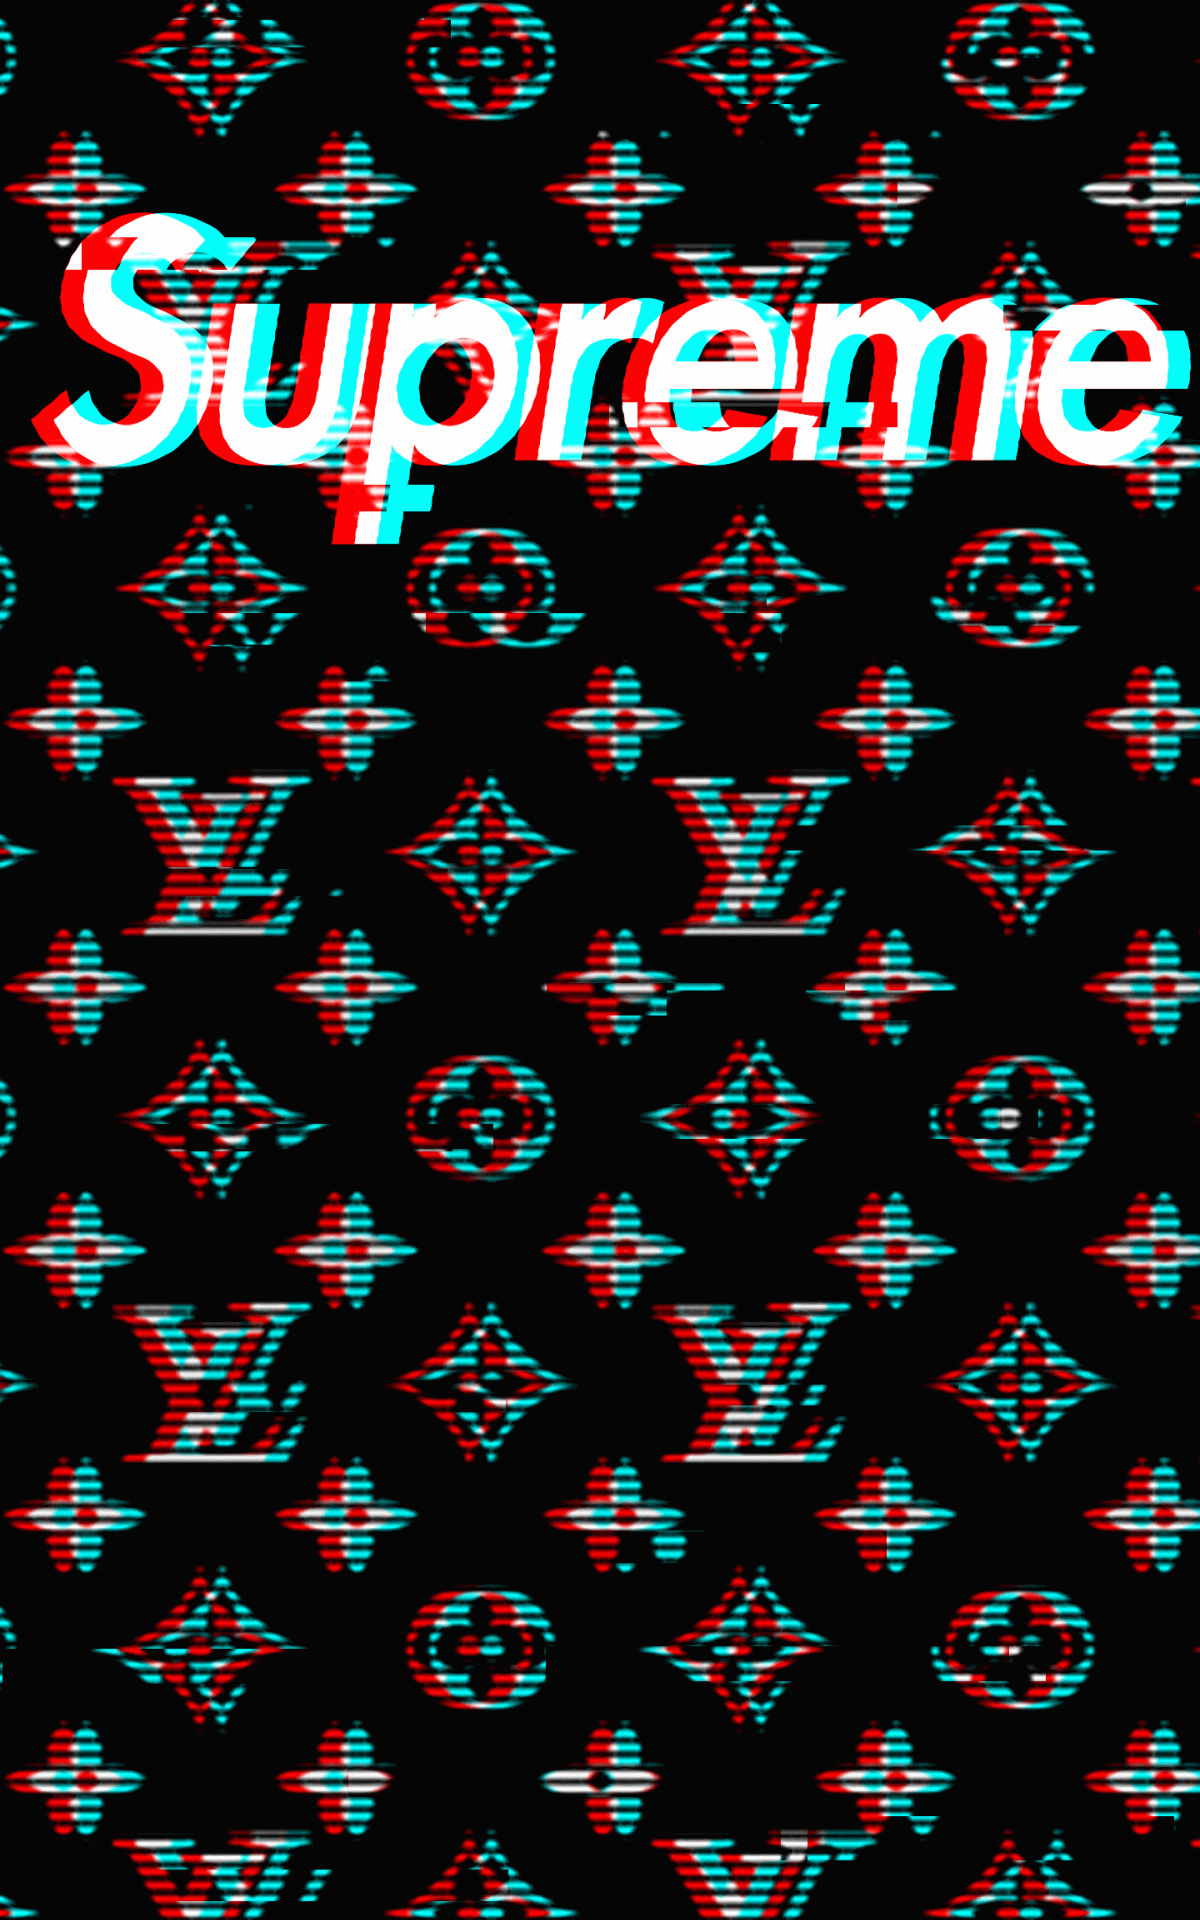 Black Louis Vuitton Supreme Wallpapers Top Black Louis Supreme Wallpaper Iphone 2861873 Hd Wallpaper Backgrounds Download